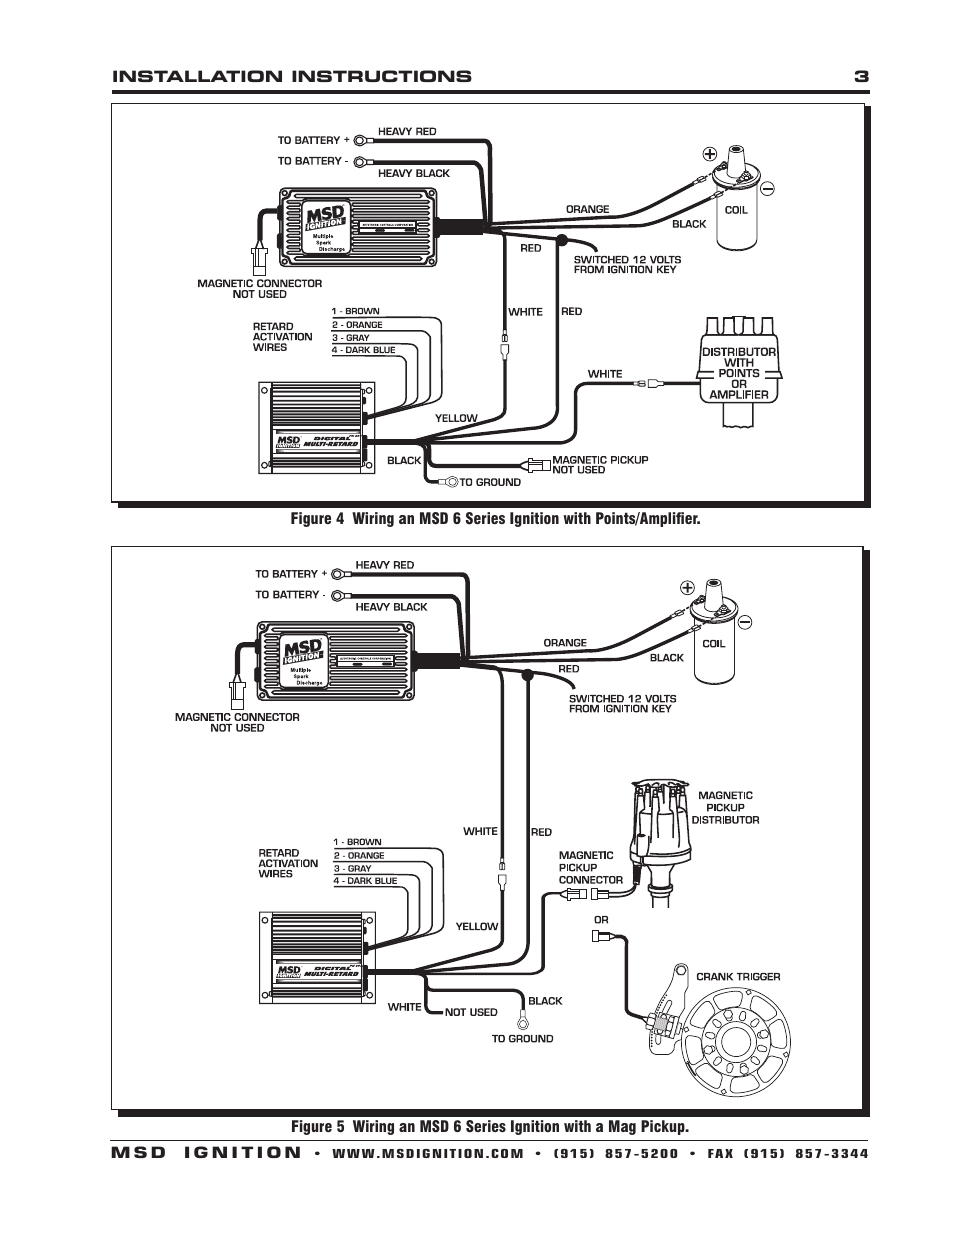 Msd 8975 Wiring Diagram Schemes 6aln For Tach Digital Multi Retard Installation User Manual Page 3 8 Rh Manualsdir Com 6al Ignition